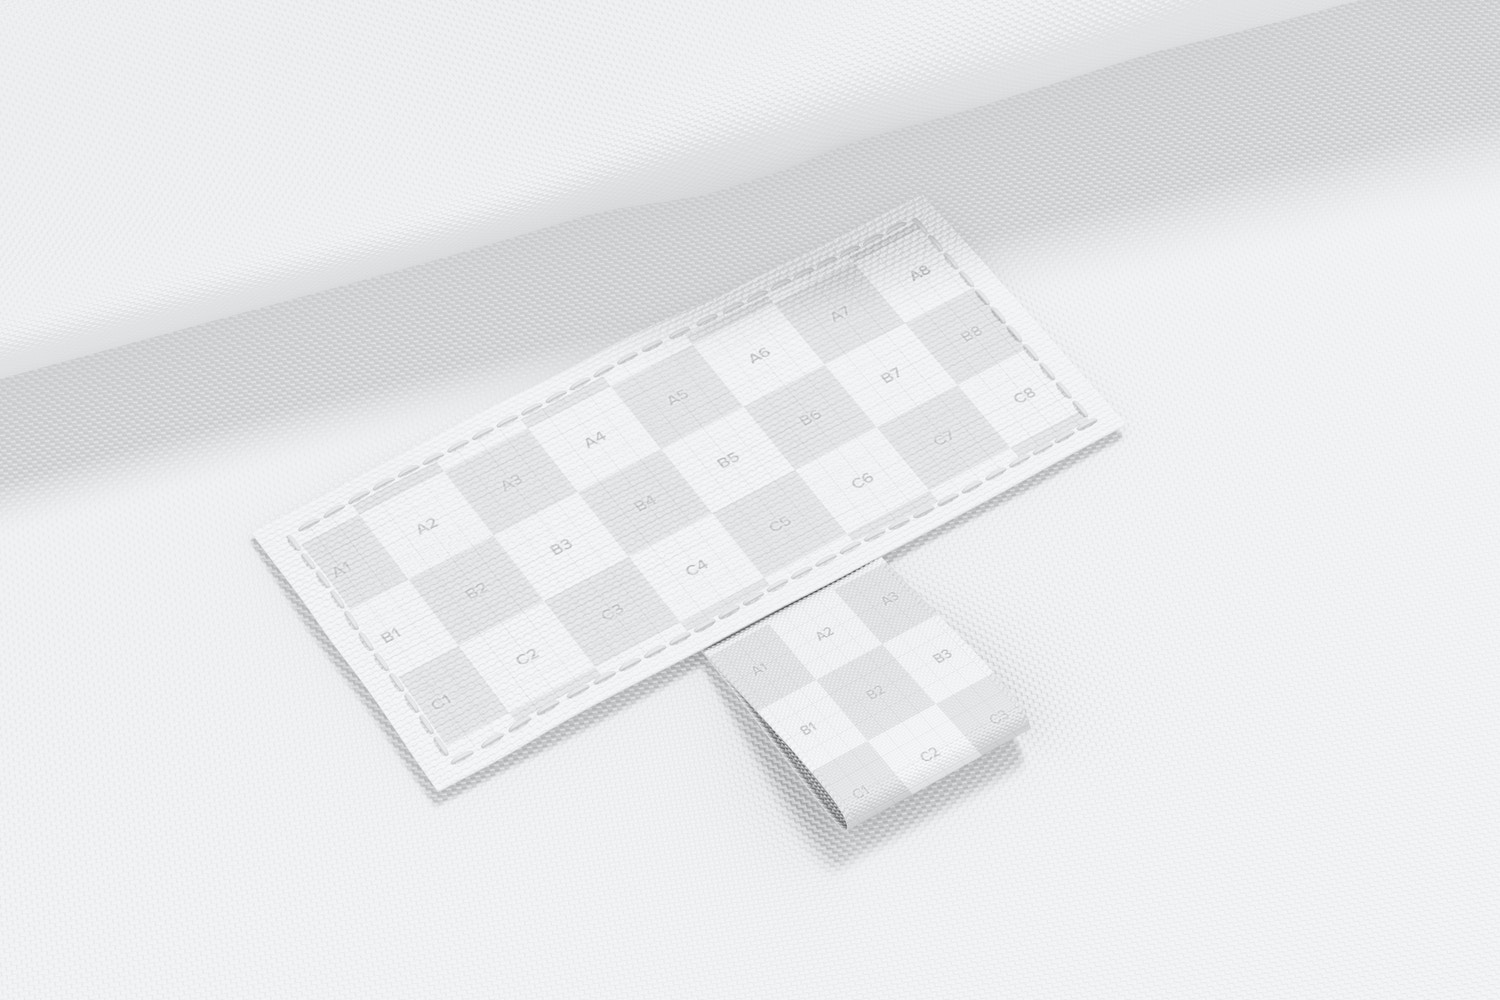 Rectangular Sewn-In Label Mockup, Perspective